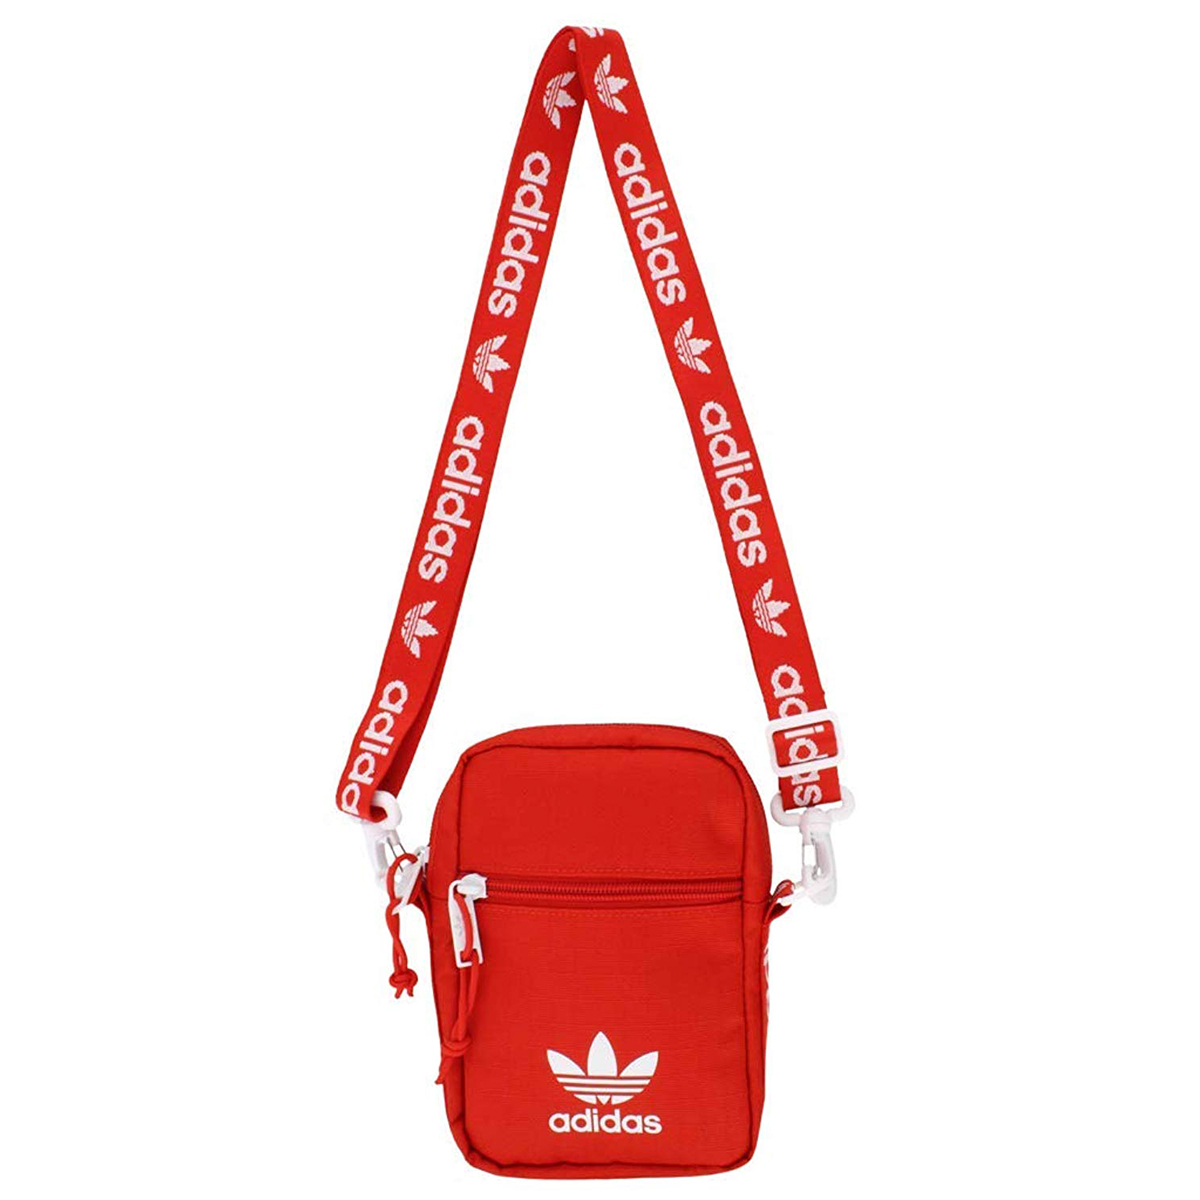 adidas-originals-festival-crossbody-bag